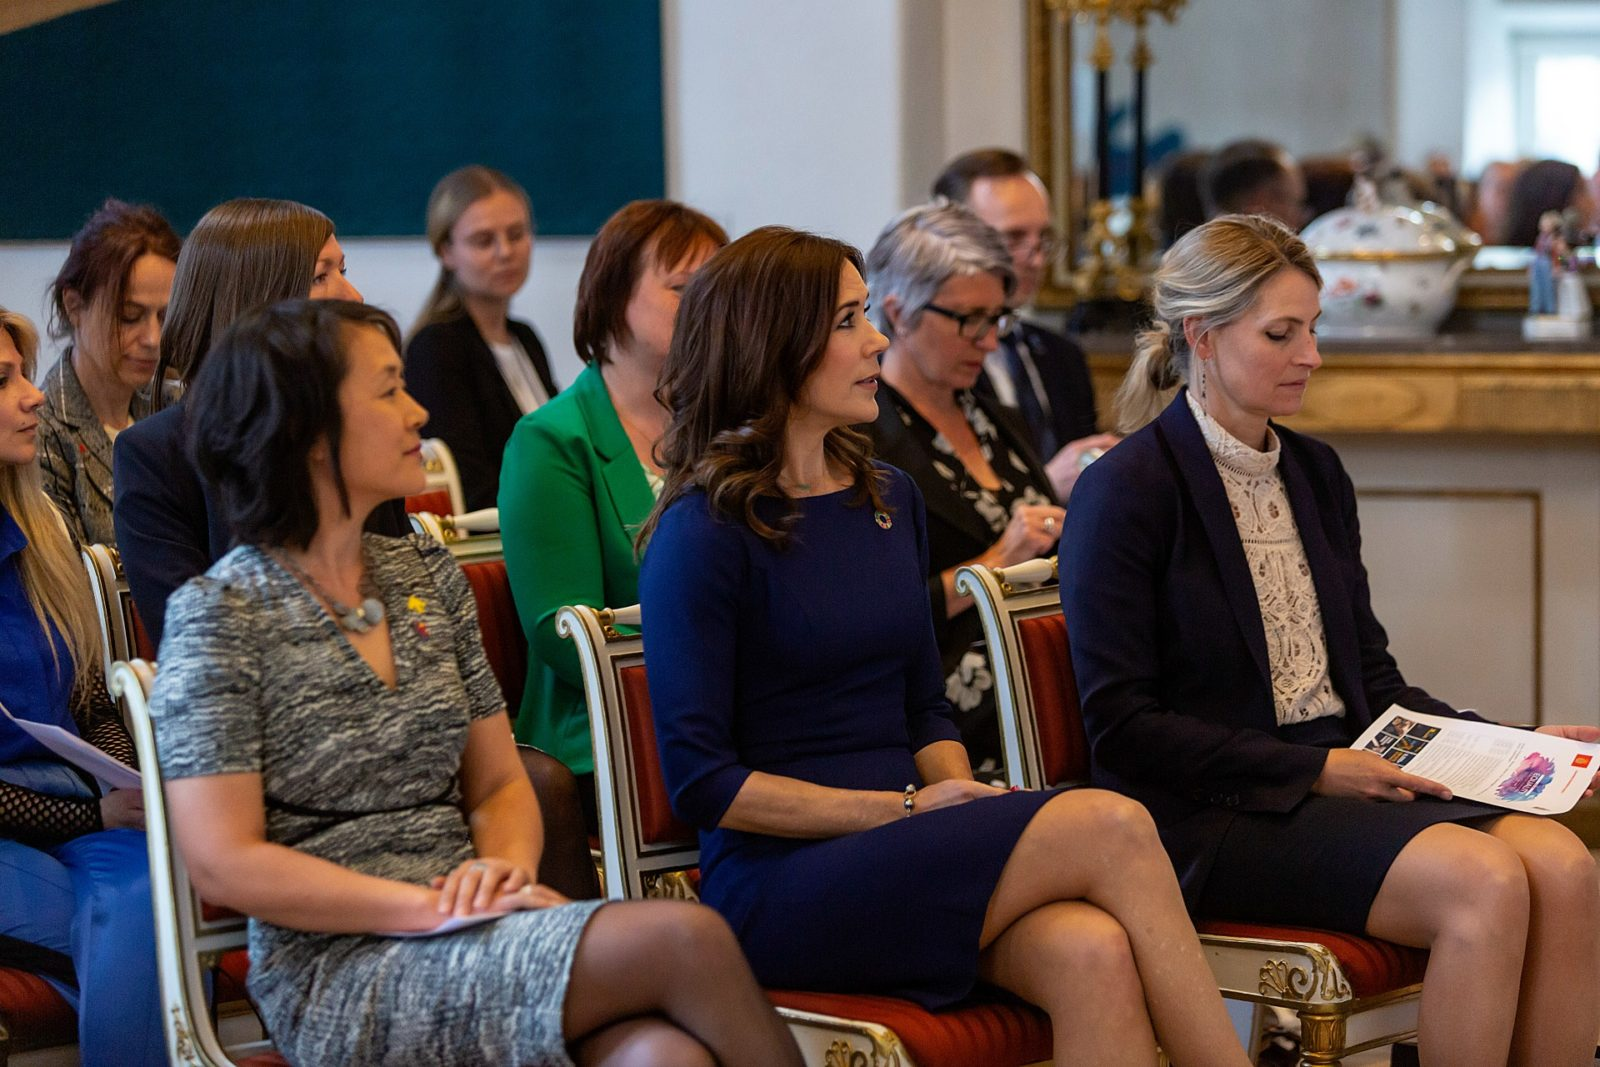 Princess Mary was in the nations capital on Tuesday for the Women Deliver conference. Source: Getty